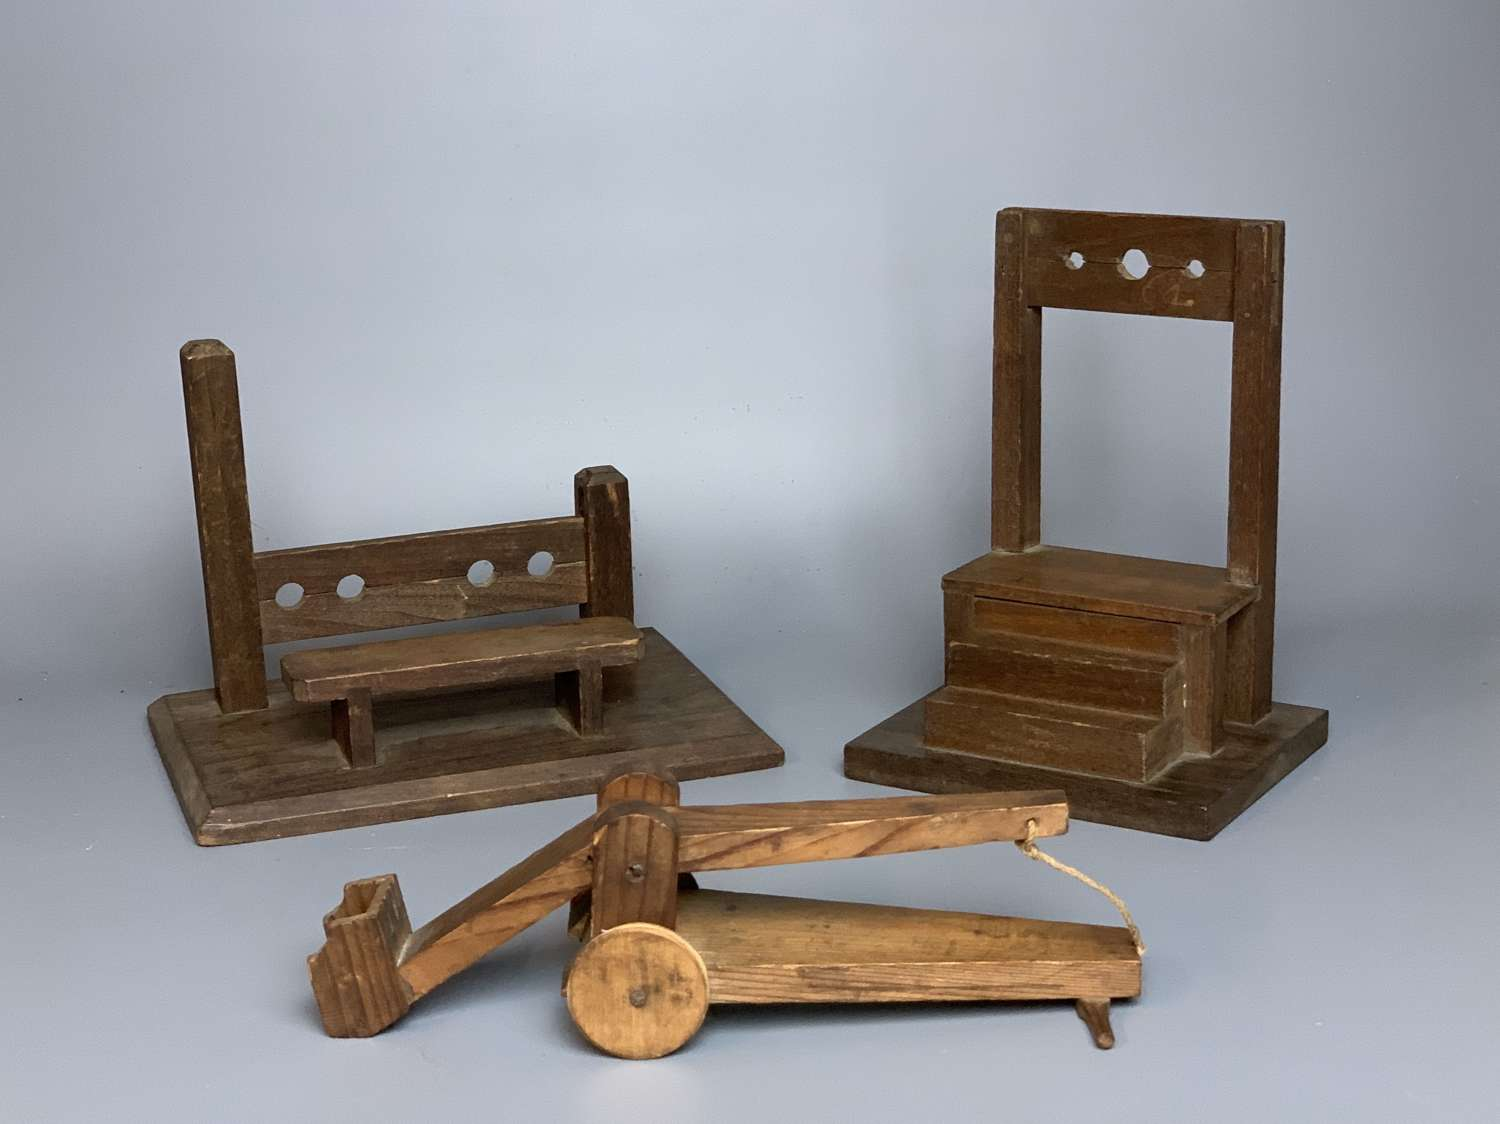 Naive Wooden Models of Instruments of Punishment